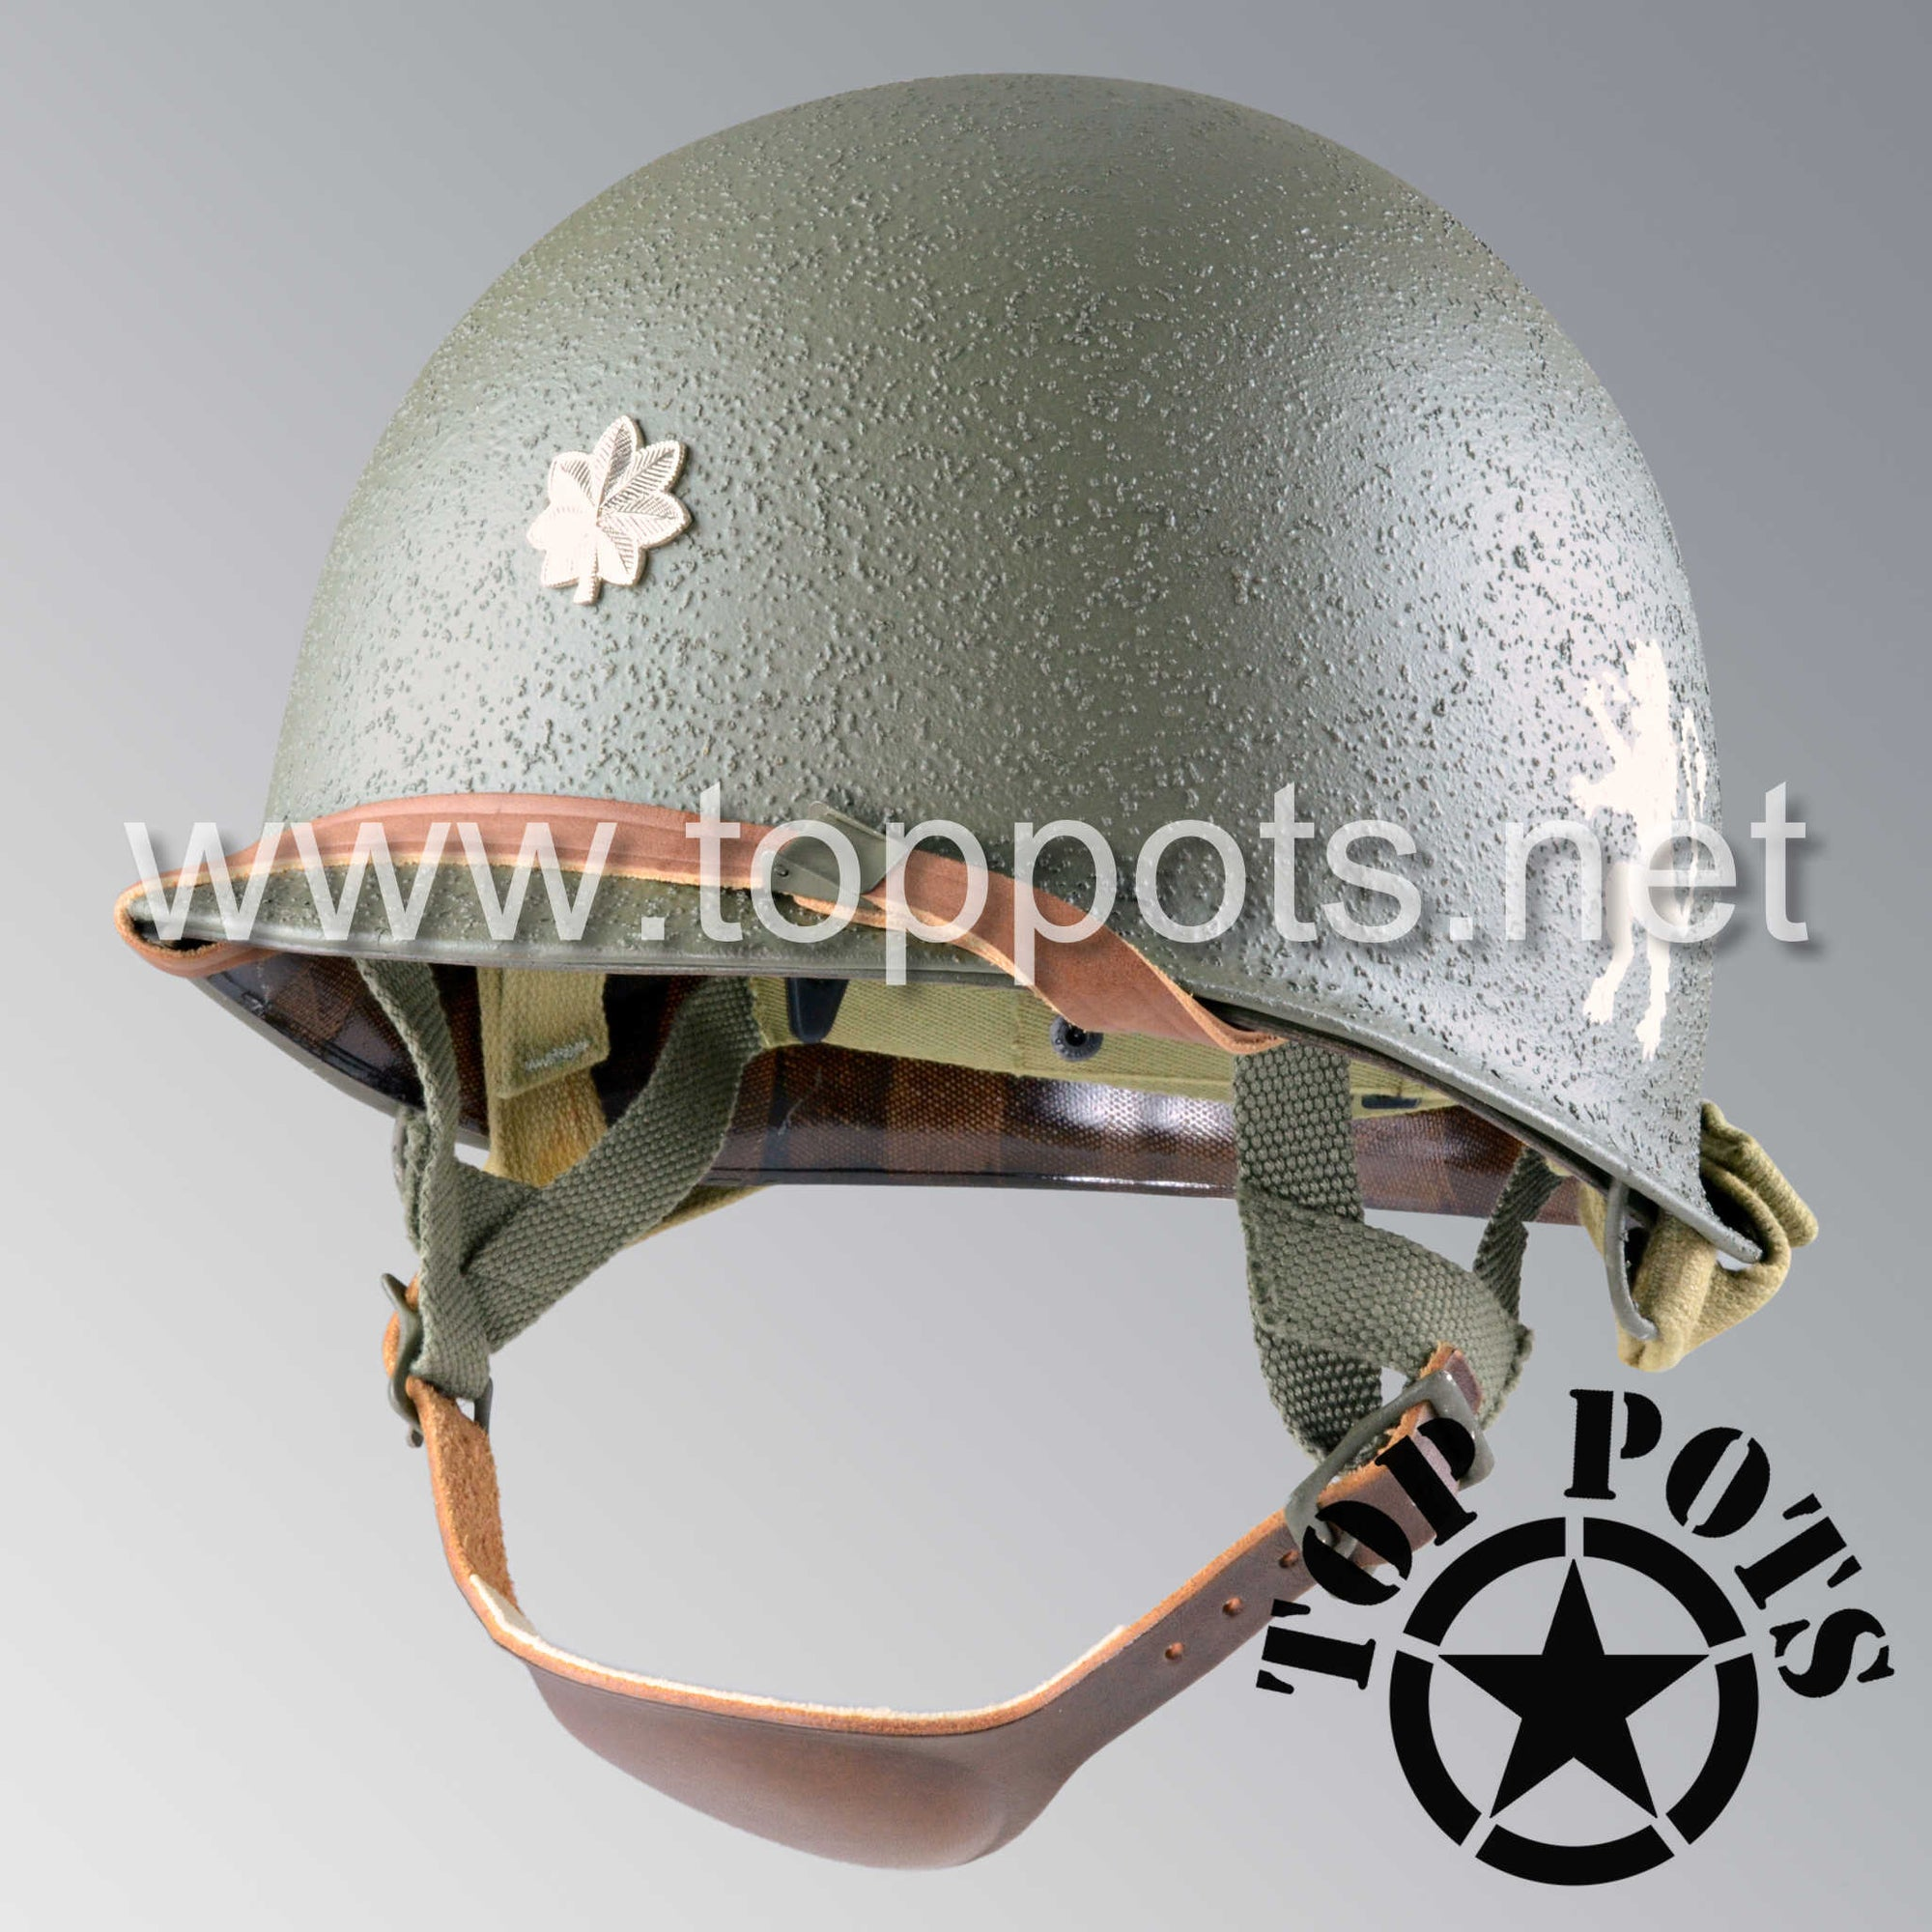 Image 1 of WWII US Army Restored Original M2 Paratrooper Airborne Helmet D Bale Shell and Liner with 505th PIR Major Metal Officer Emblem